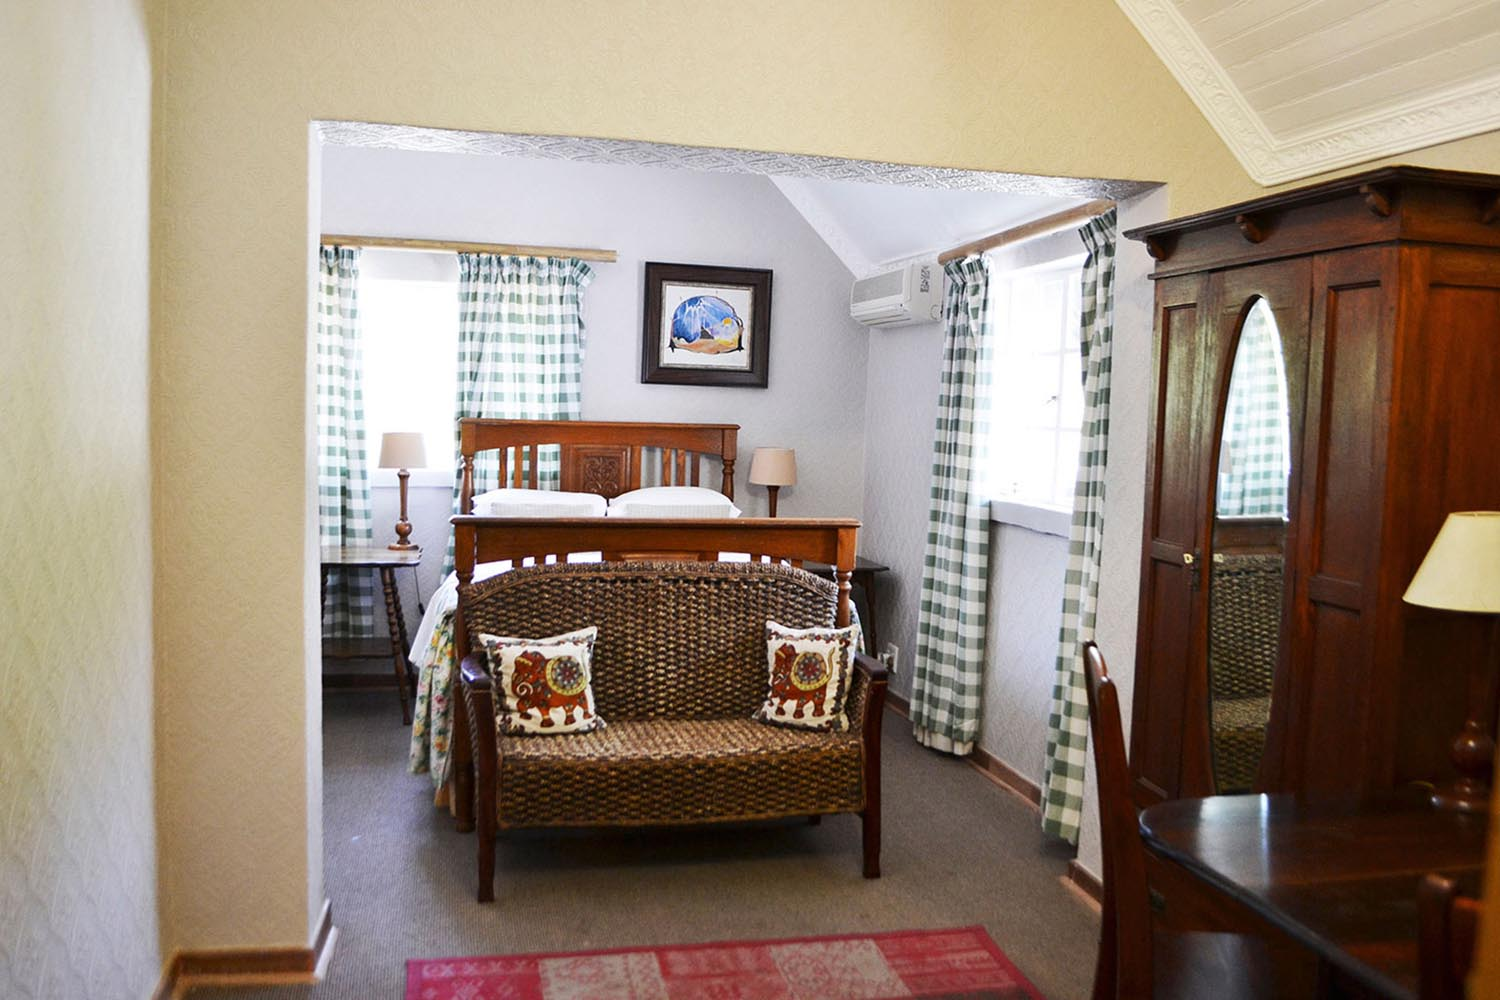 Samwise: Rooms at Hobbit Hotel